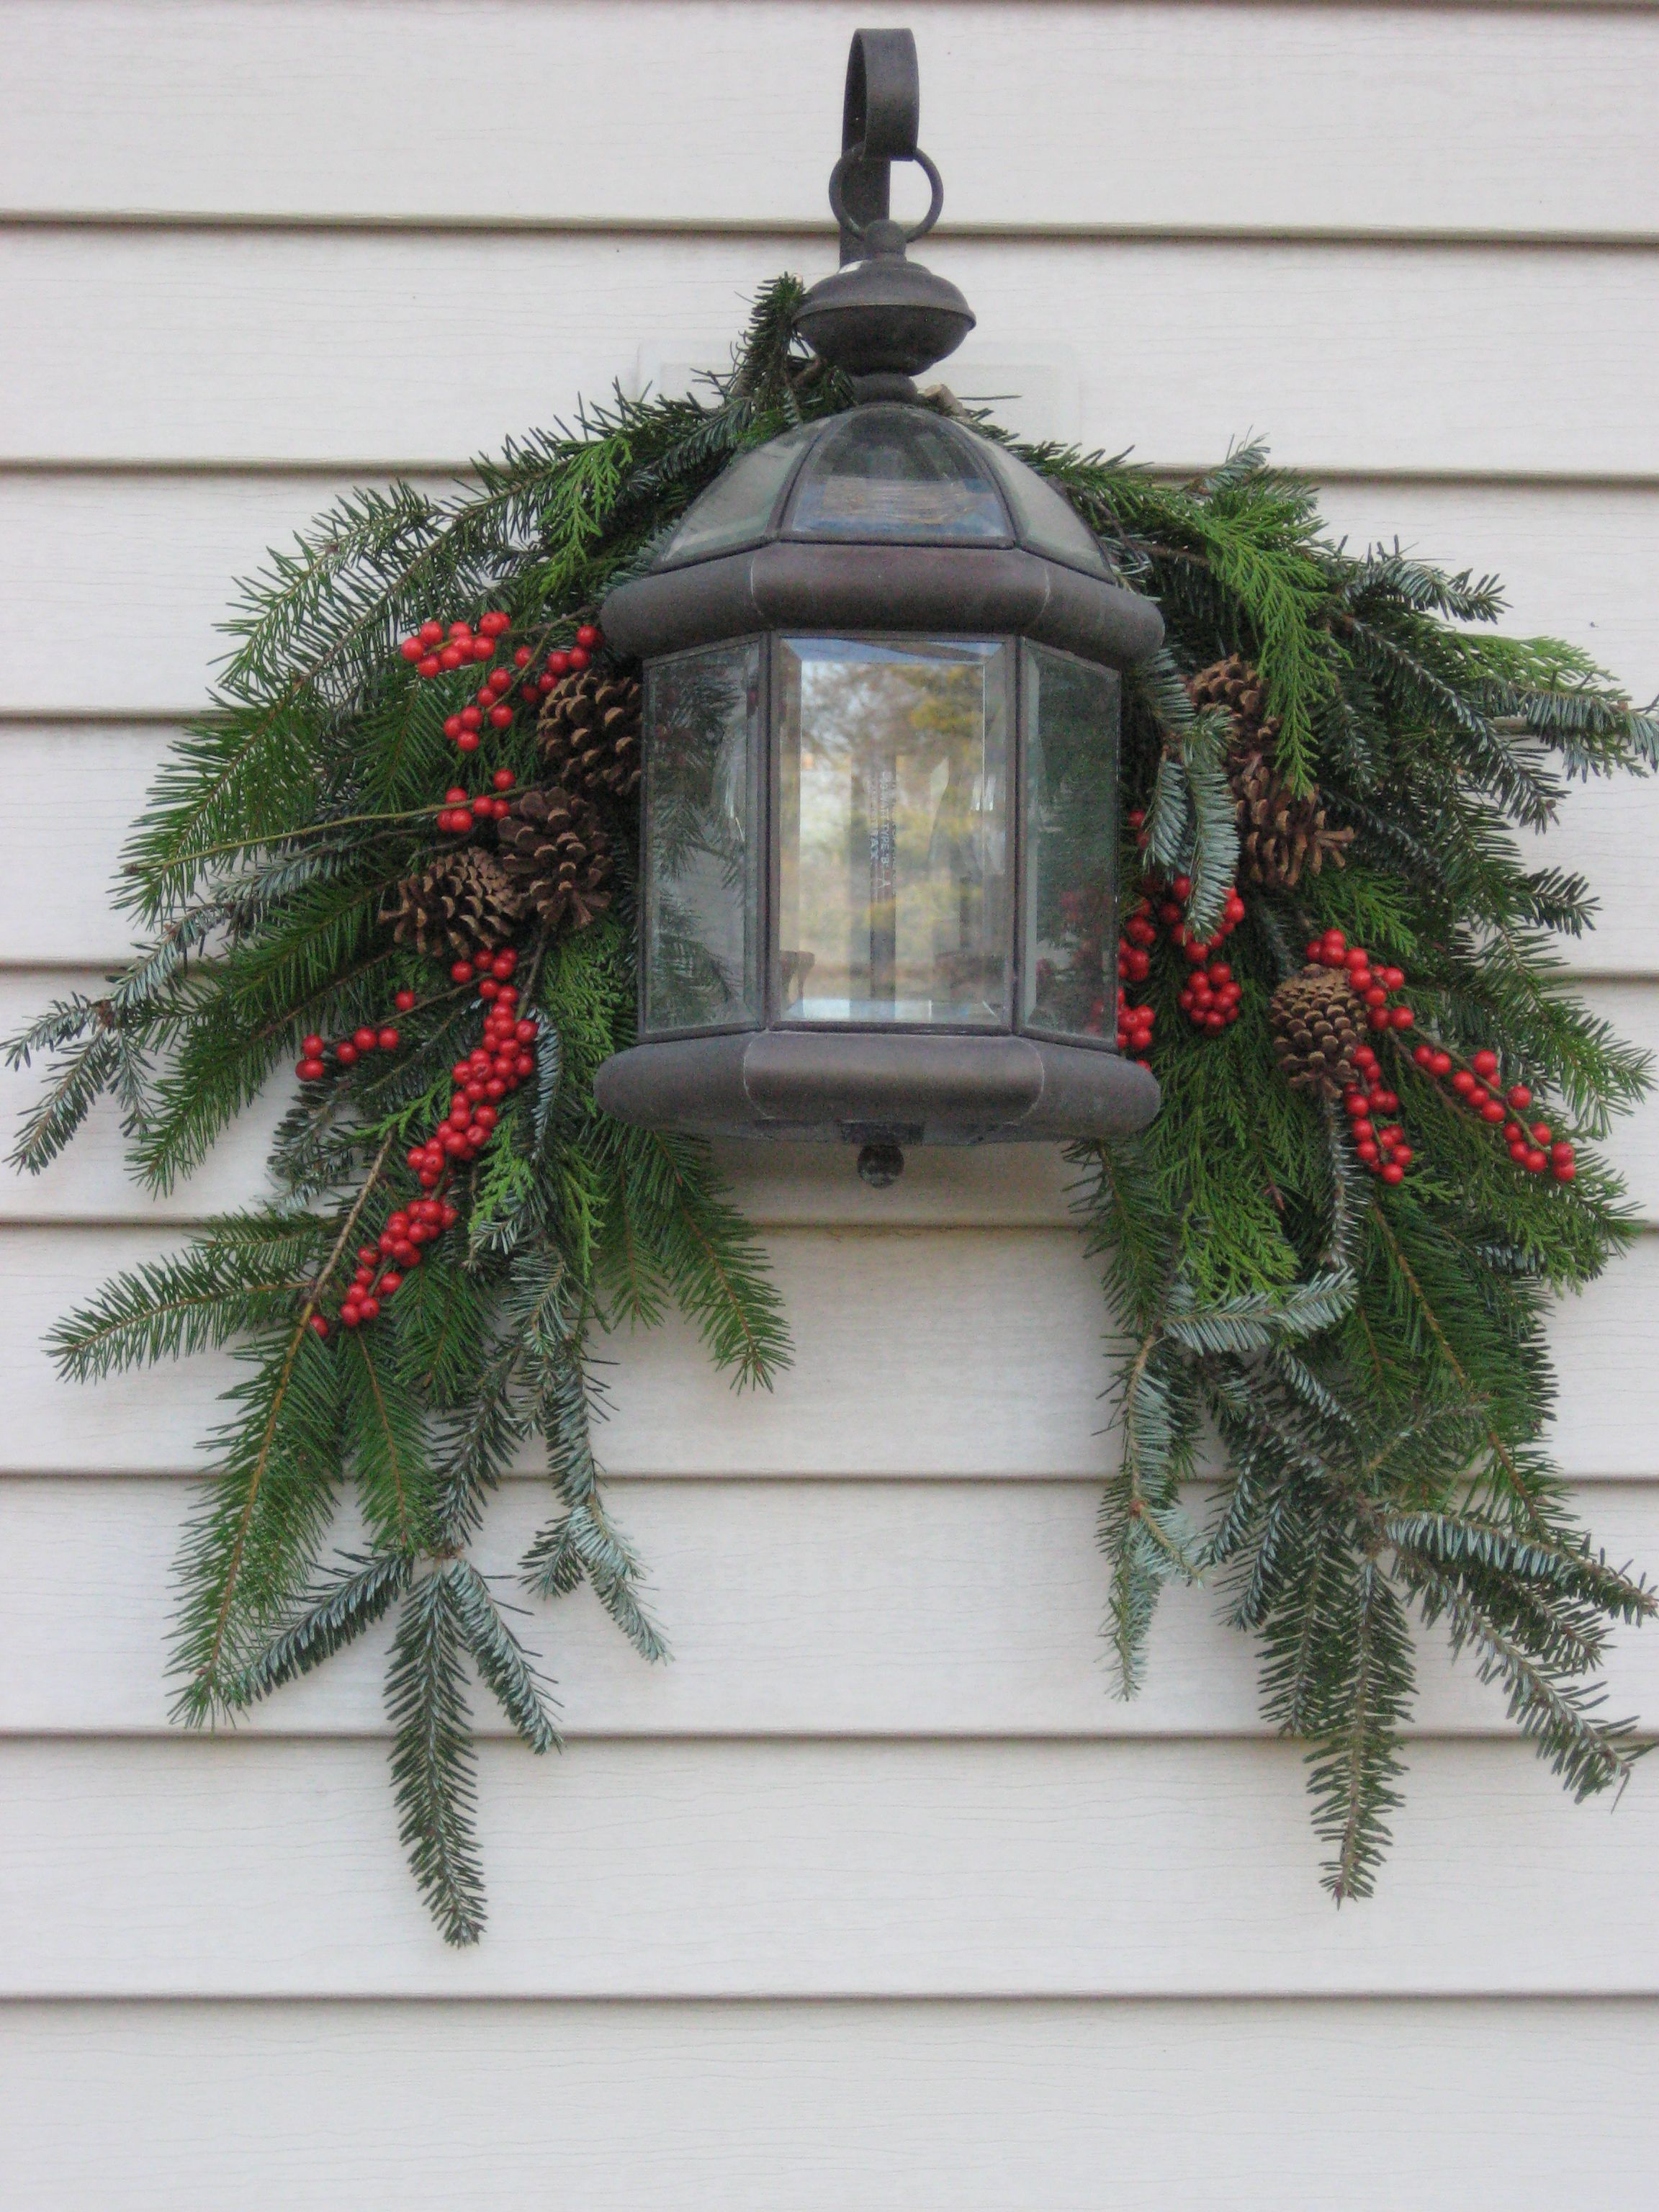 Image Via Christmas Outdoor Decor Giant Lawn Ornaments Ornament Wreath